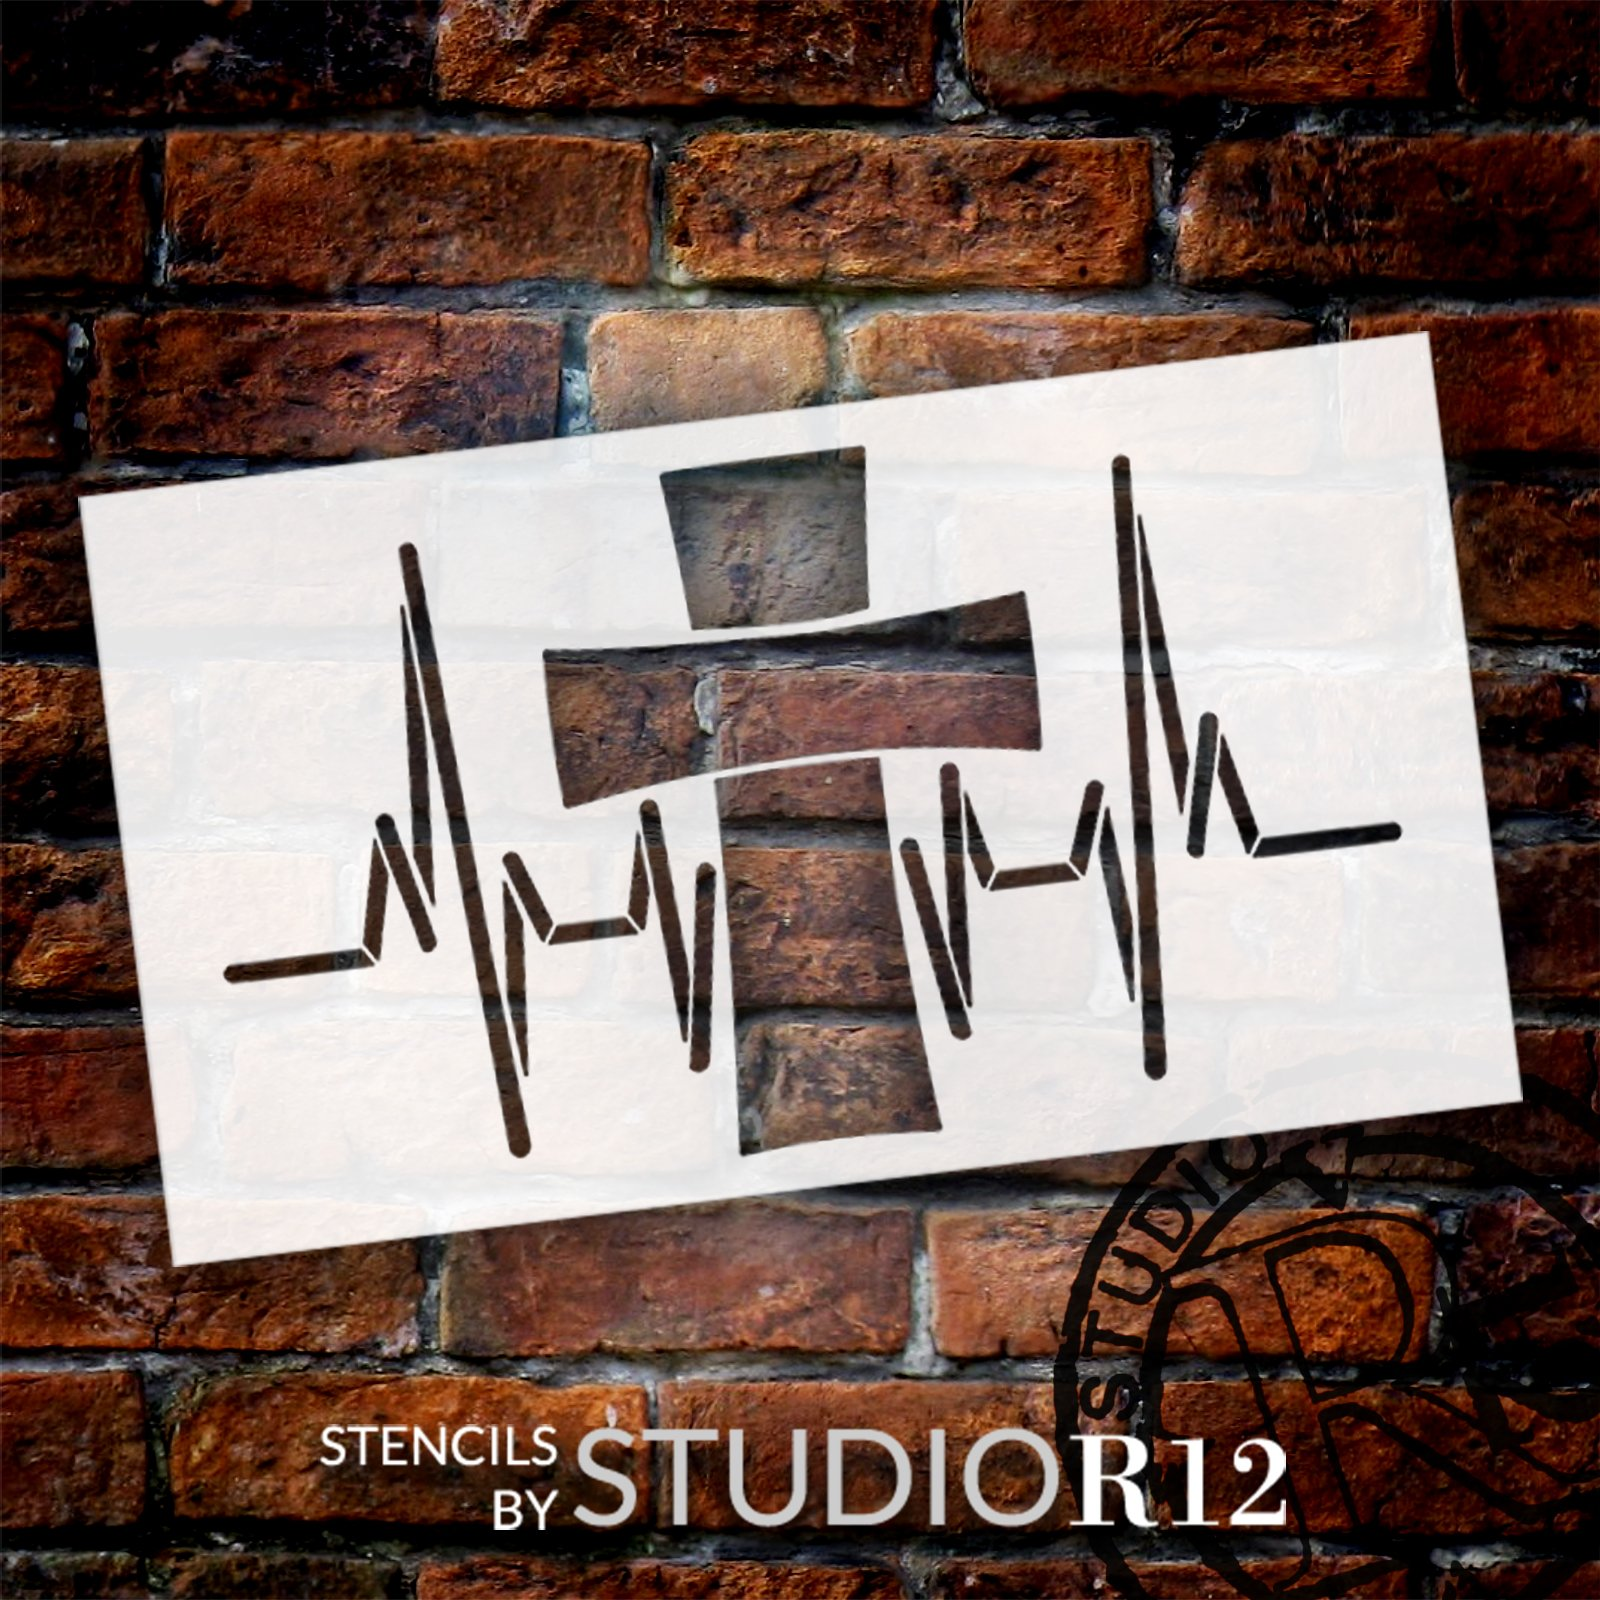 Heartbeat with Cross Stencil by StudioR12 | Craft DIY Faith & Inspiration Home Decor | Paint Wood Sign | Reusable Mylar Template | Select Size